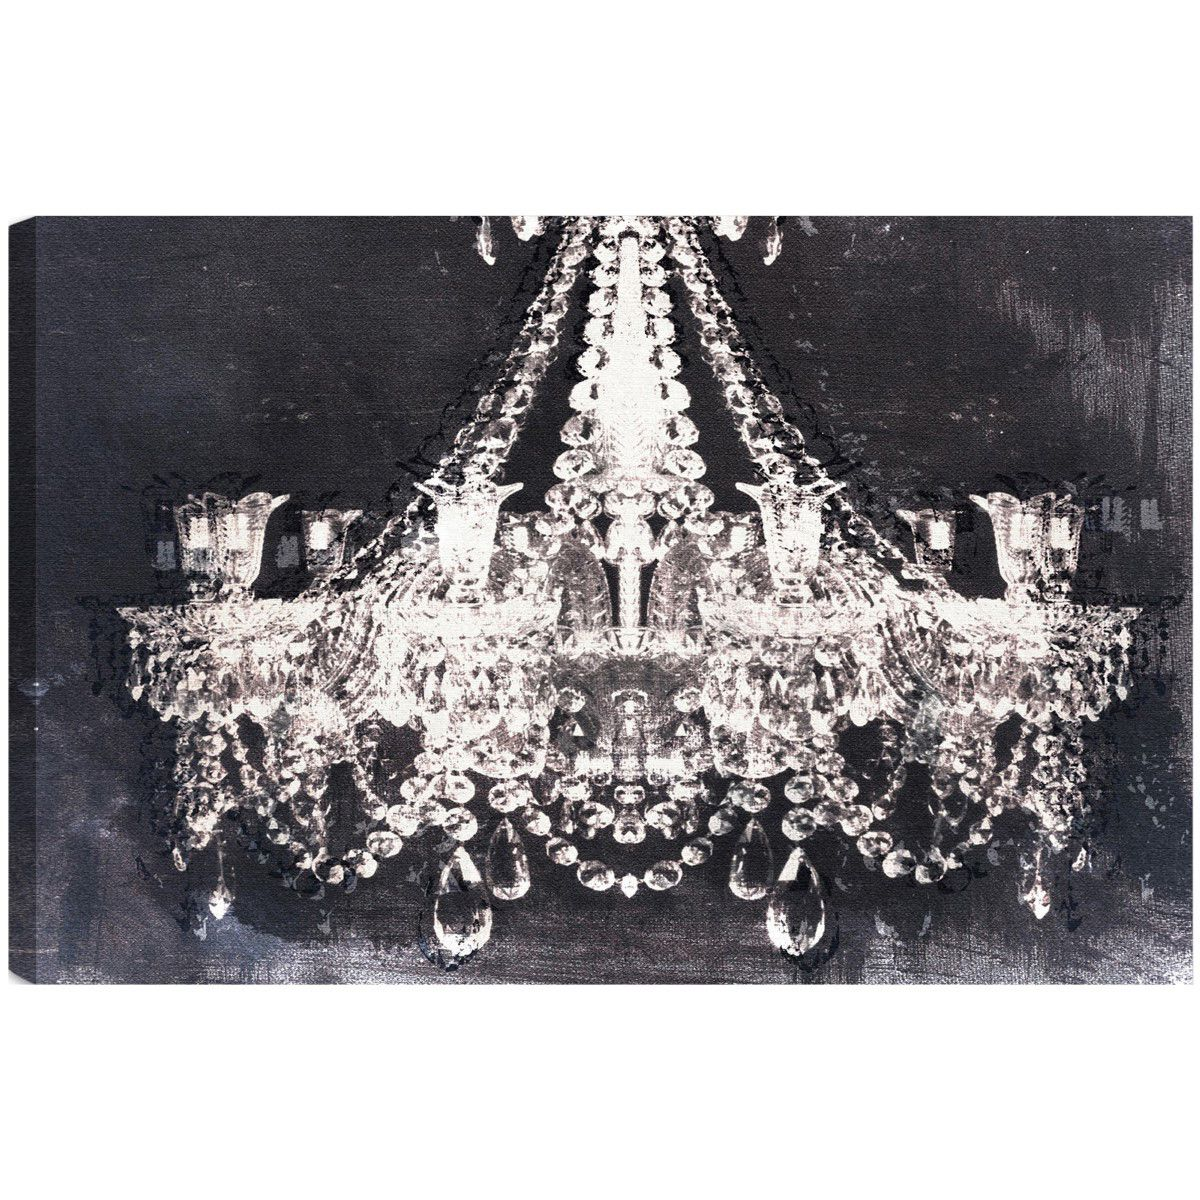 of night chandelier entrance showing gal with art oliver wall dramatic view attachment gallery photos canvas decors